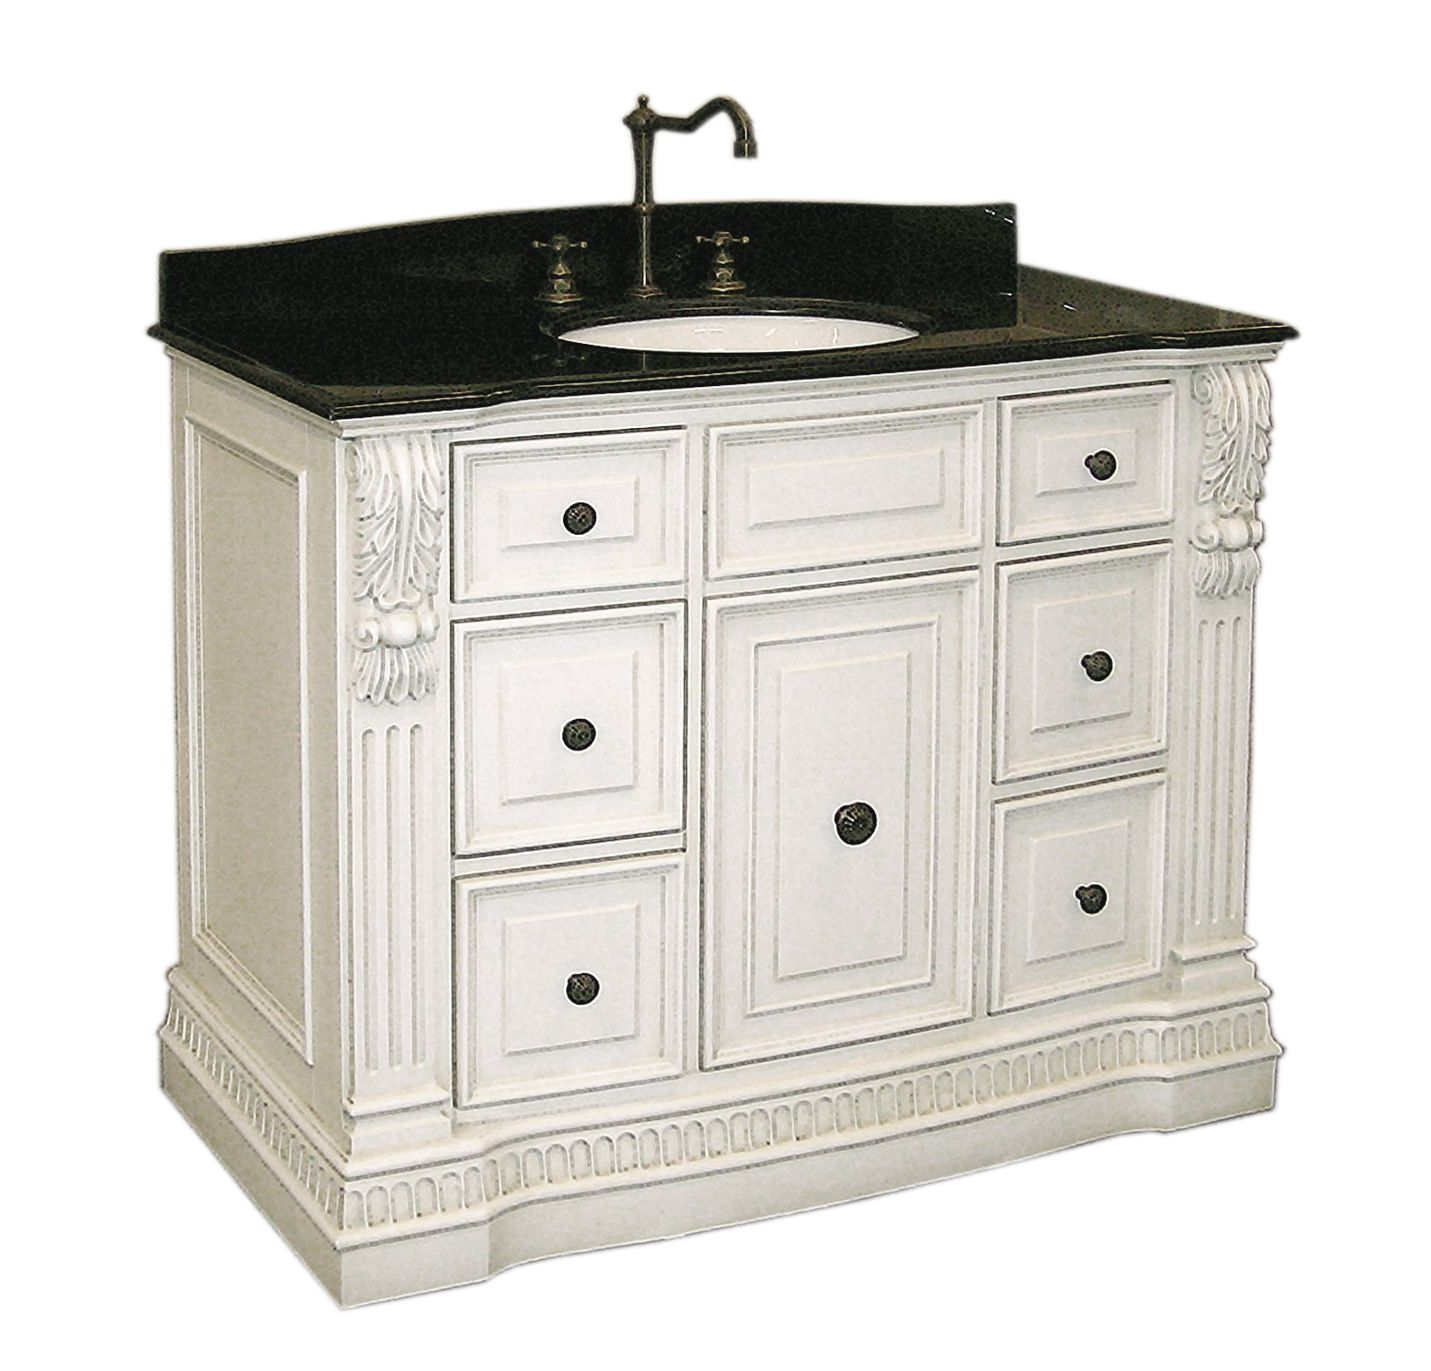 Latest Posts Under: Bathroom vanity cabinets | For the home ...